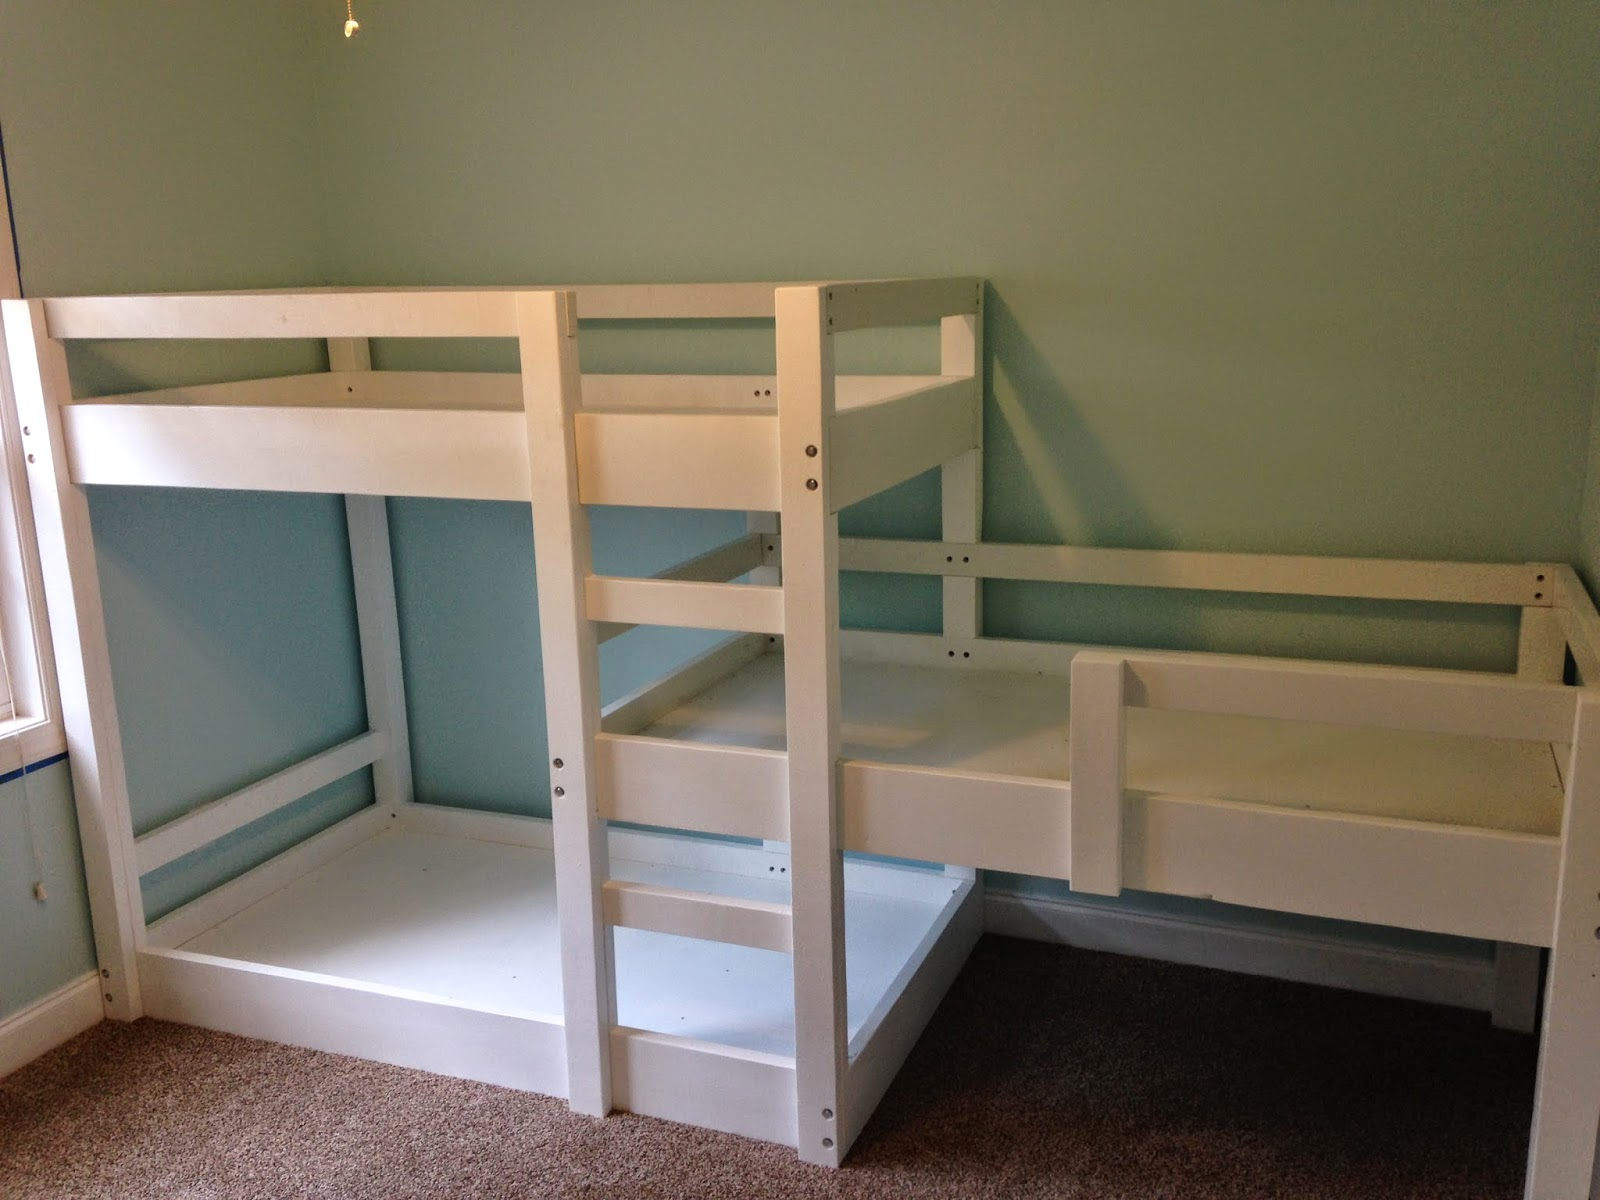 Plans for Building a Loft Bed Free